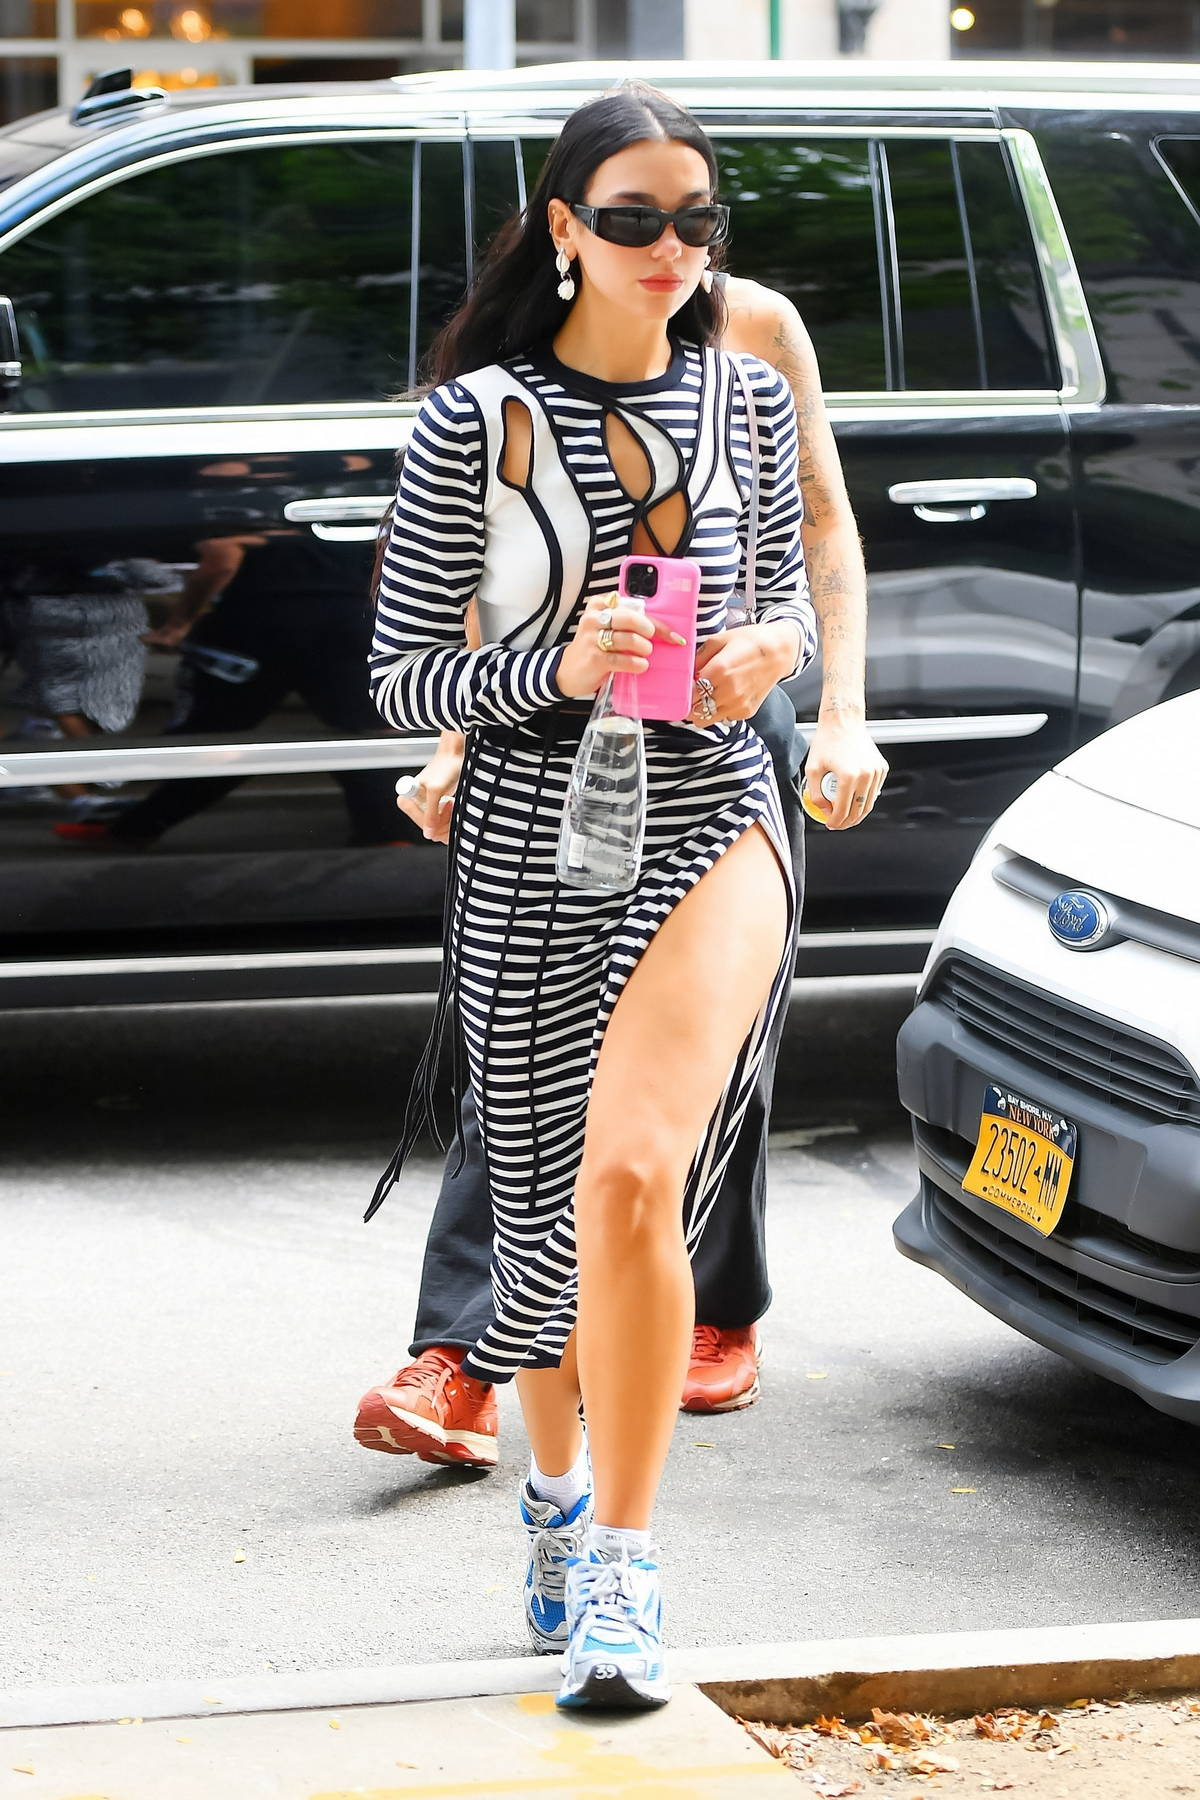 Dua Lipa looks trendy in a striped side-slit dress while heading out with boyfriend Anwar Hadid in New York City